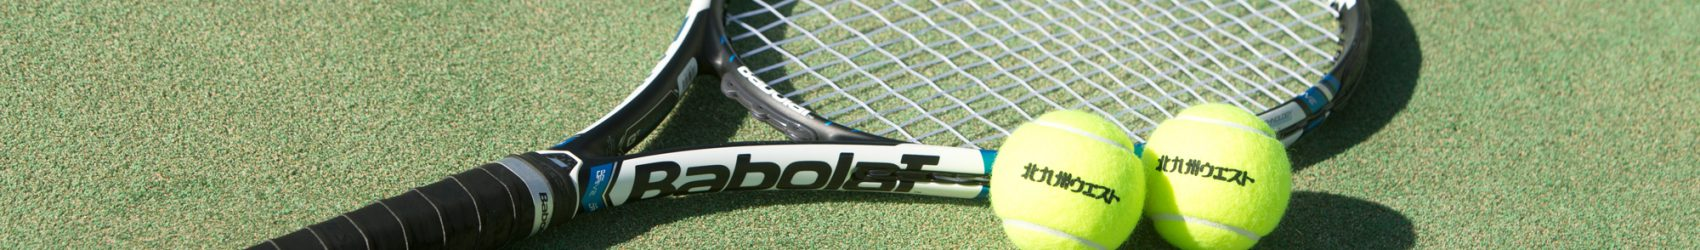 第35回 BIG SHOT TENNIS TOURNAMENT